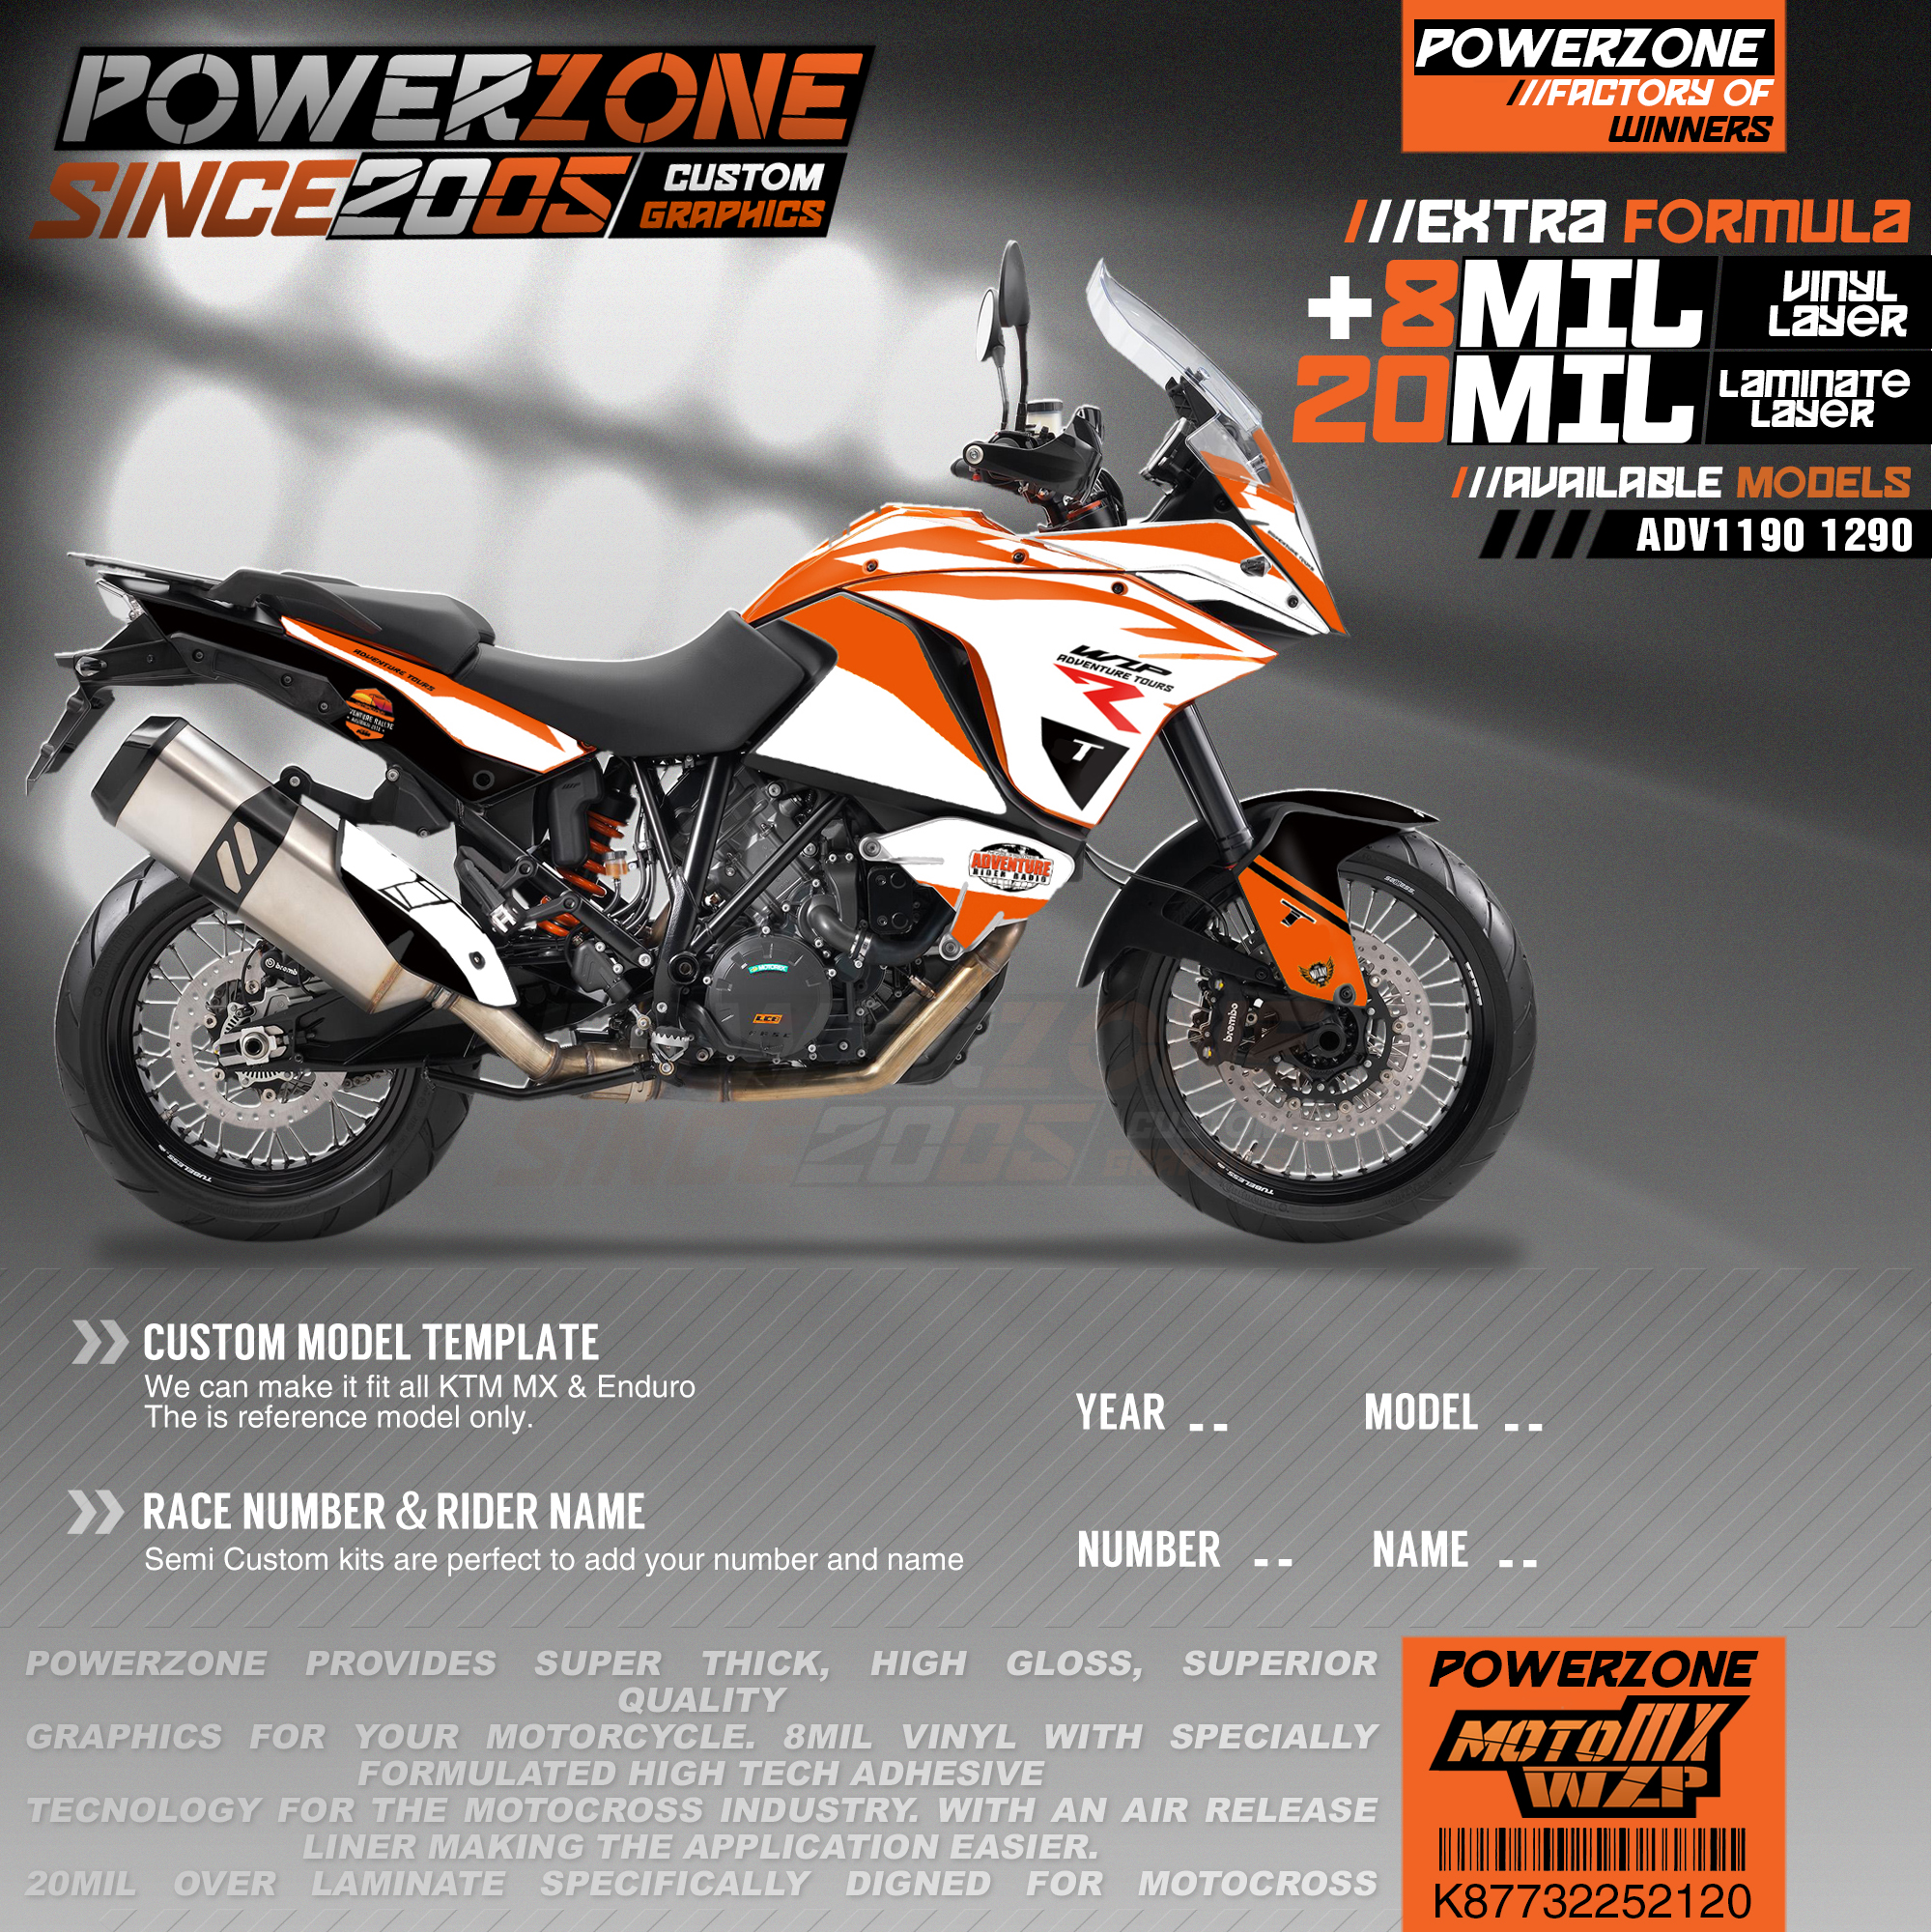 PowerZone Custom Team Graphics Backgrounds Decals 3M Stickers Kit For KTM ADV 1050 1090 1190 1290 120